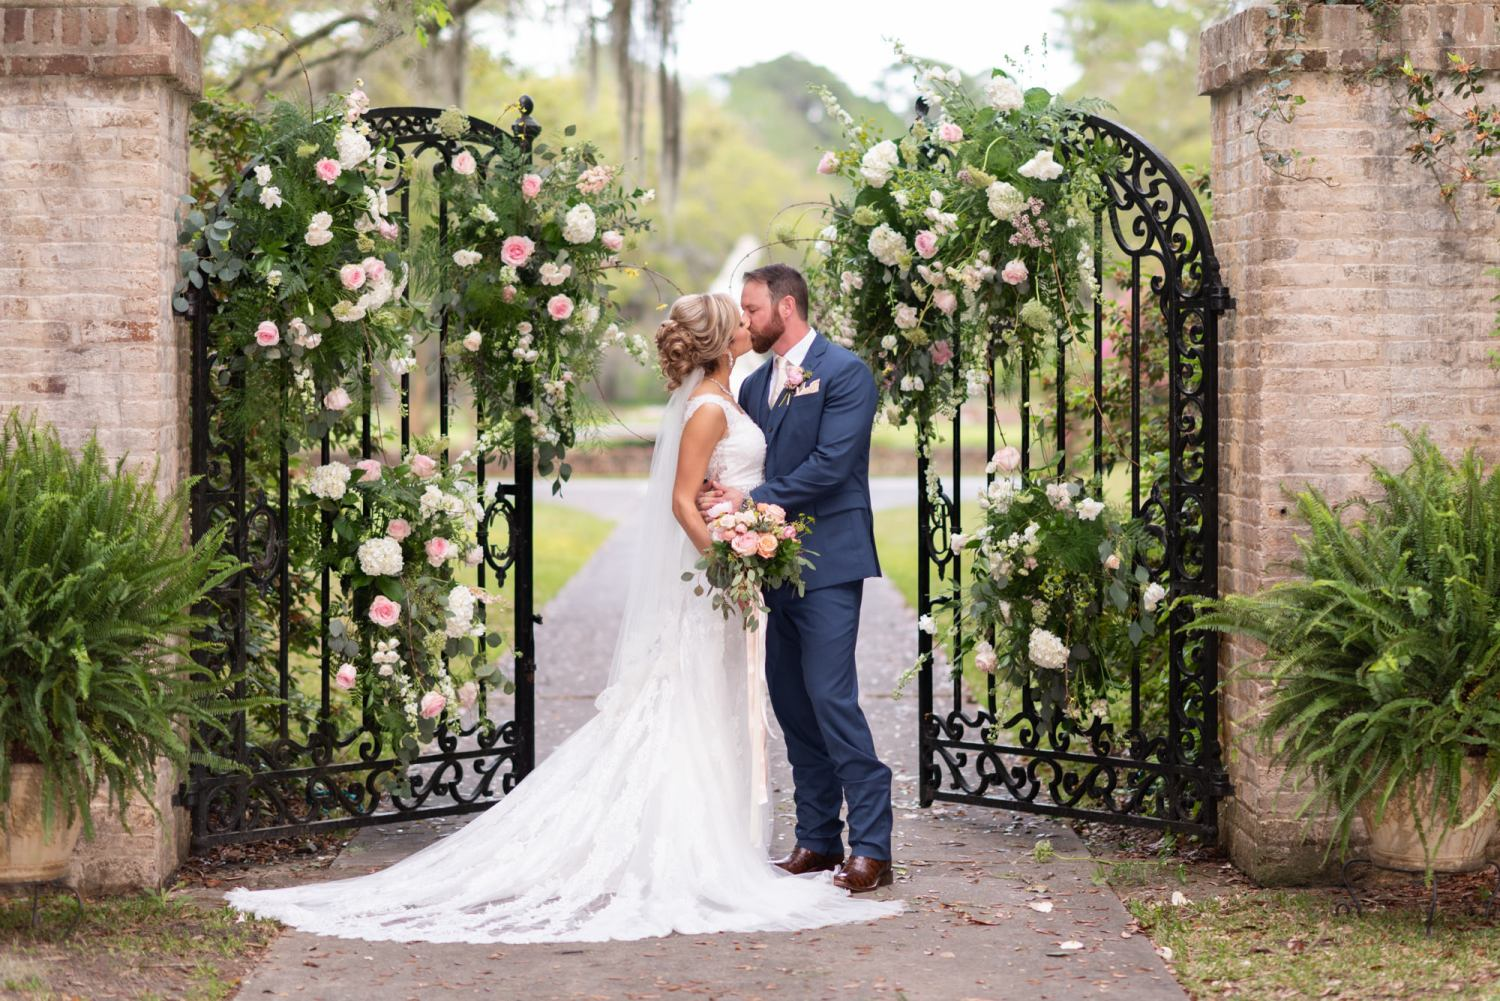 Kiss by the open gates - Brookgreen Gardens